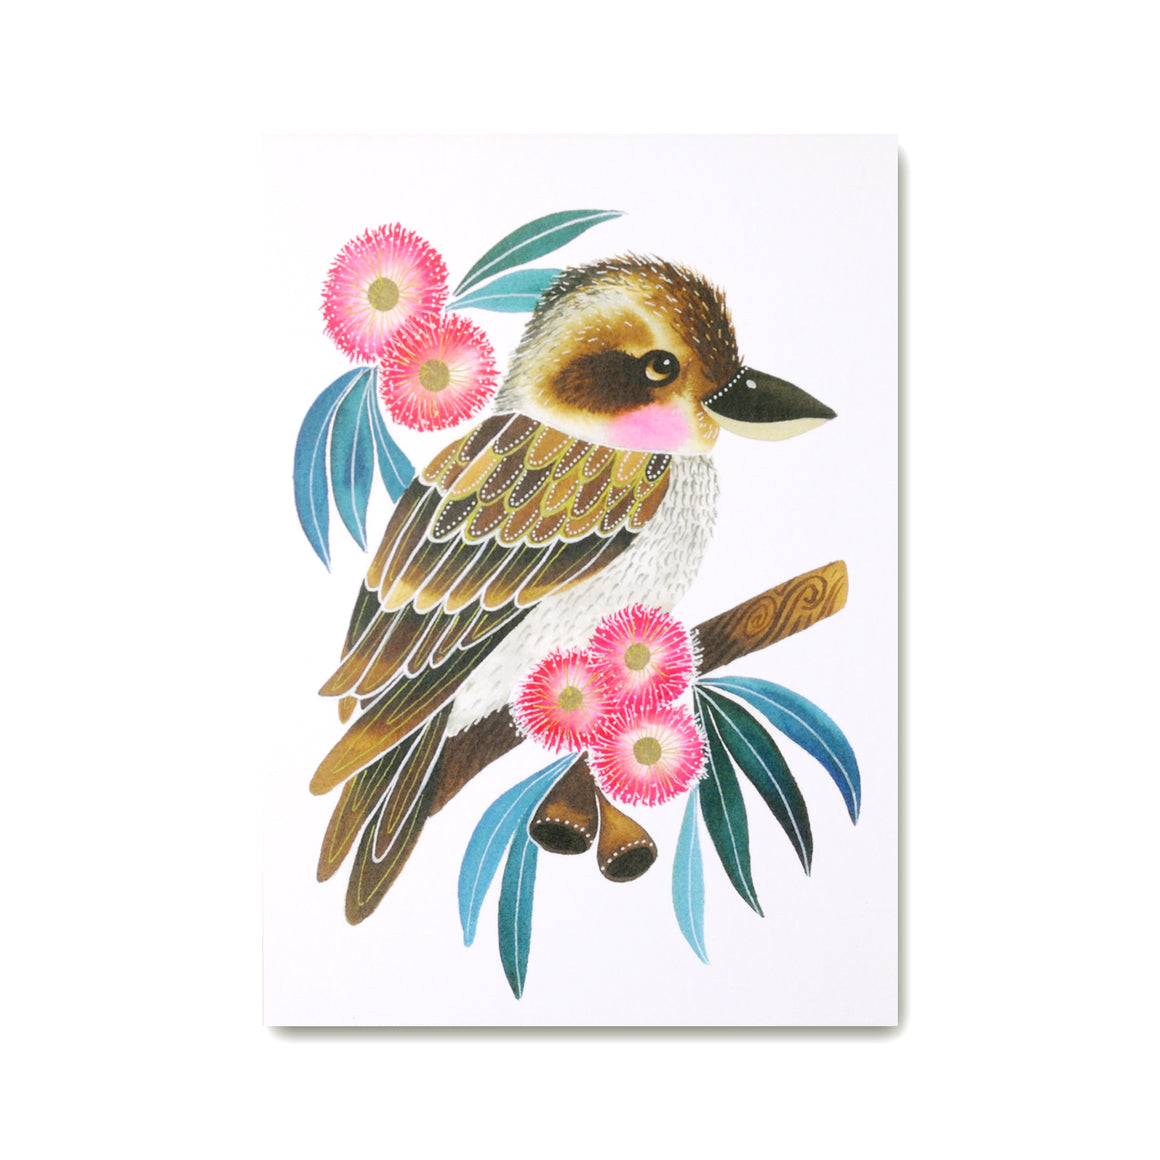 Kookaburra Art Print featuring Kookaburra illustration